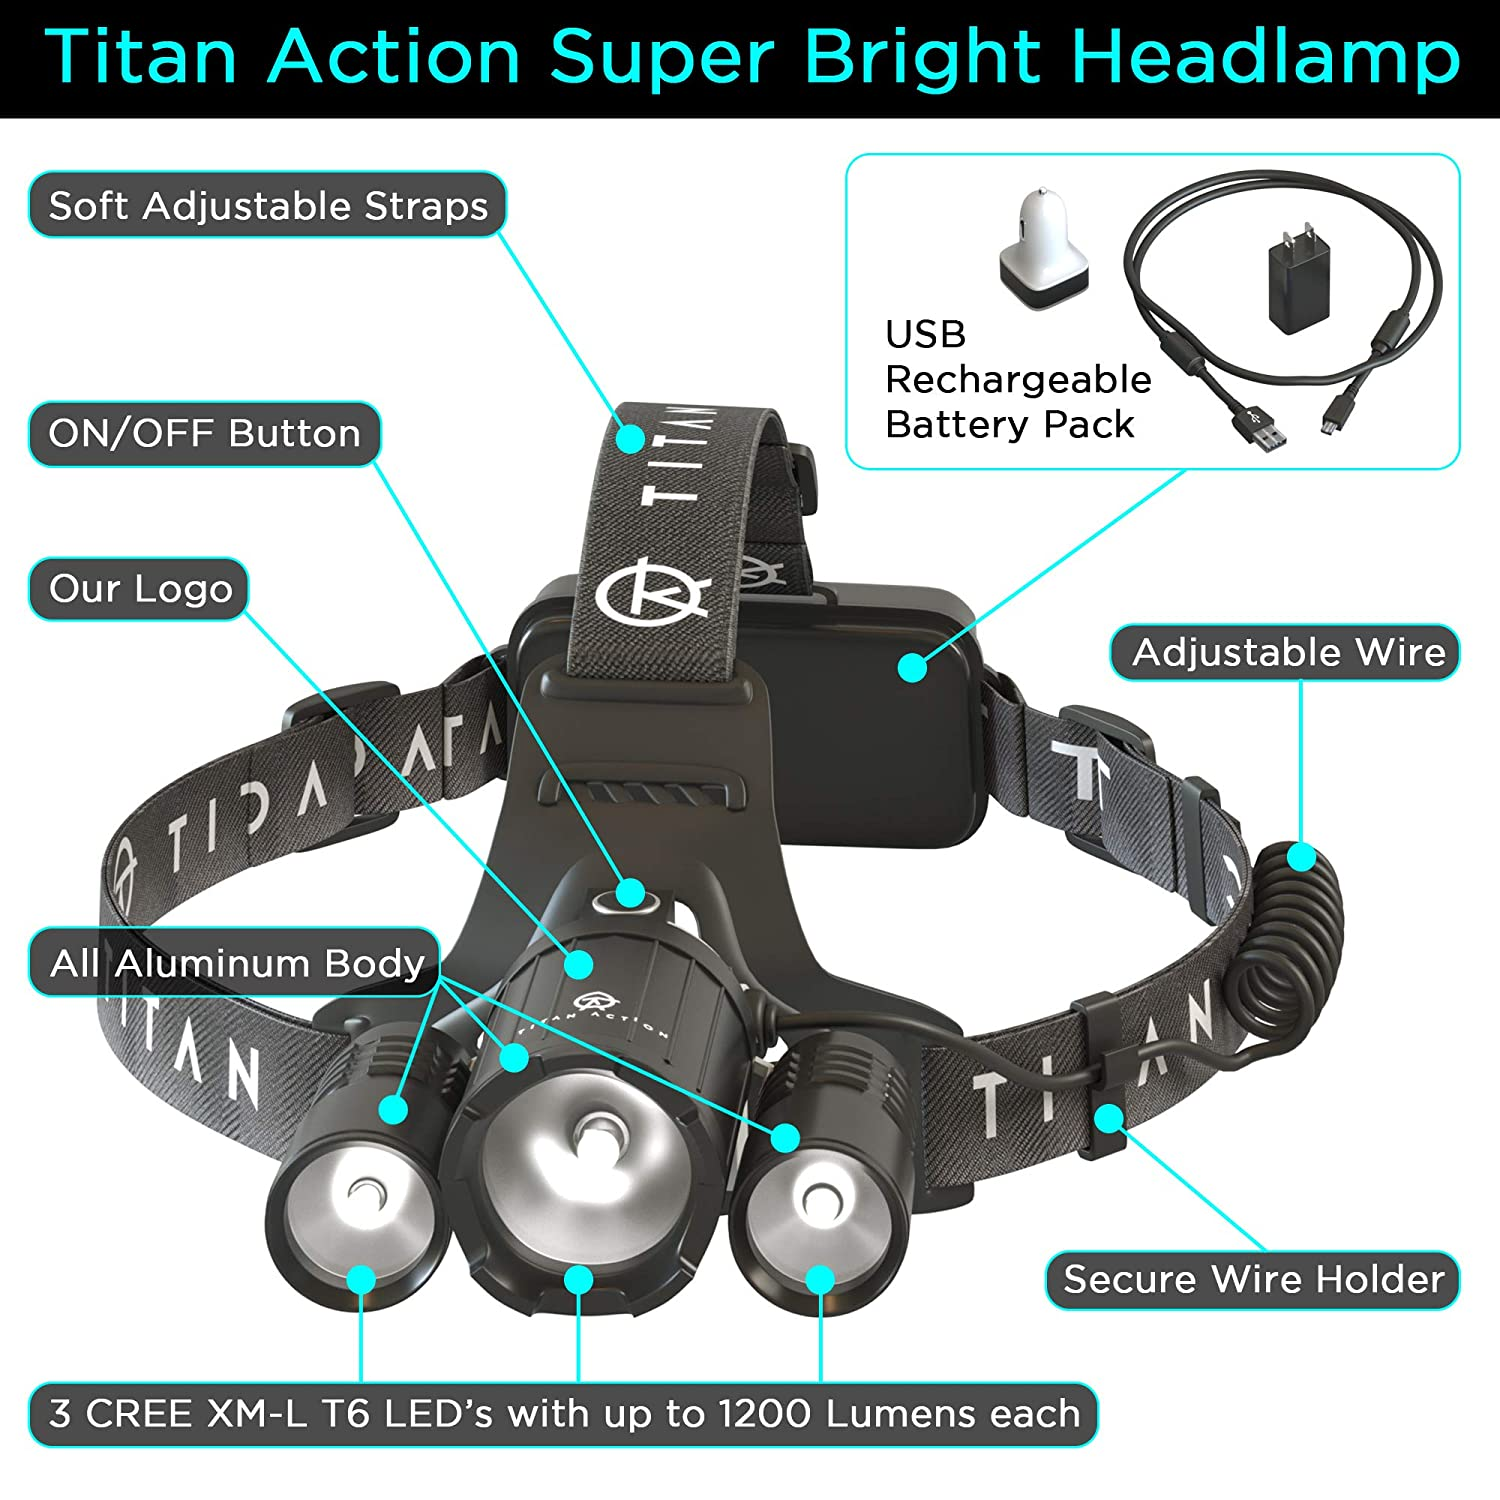 Brightest Rechargeable Led Headlamp Flashlight Titan Super Bright Cree Headlamps Wiring Diagram Water Resistant Military Grade Aluminum Torches For Night Fishing Camping Hiking Or